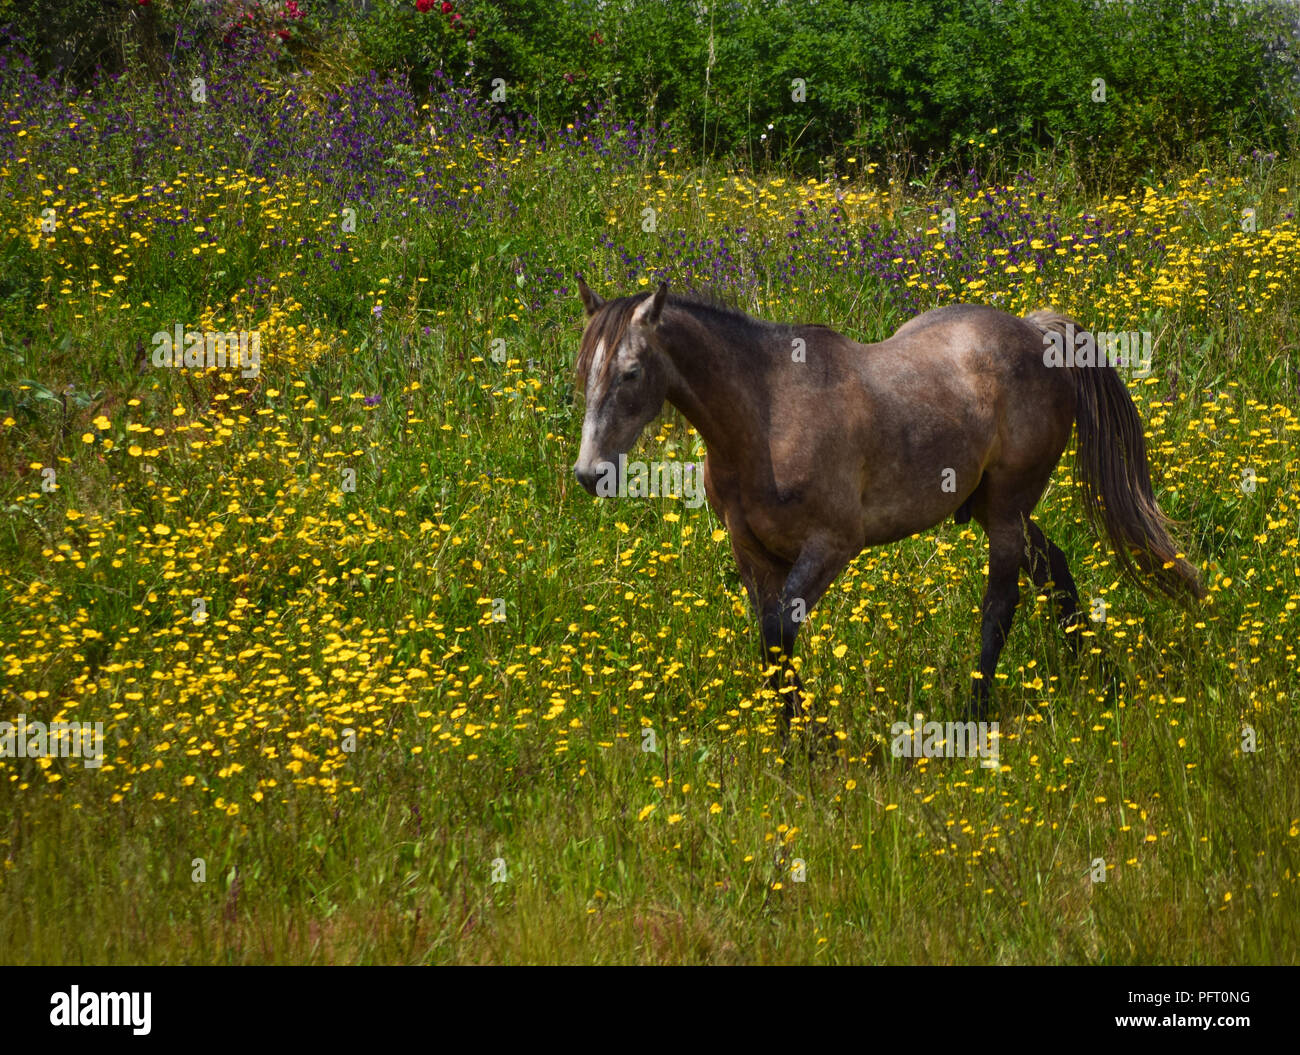 Horse grazing in a green field full of flowers - Stock Image